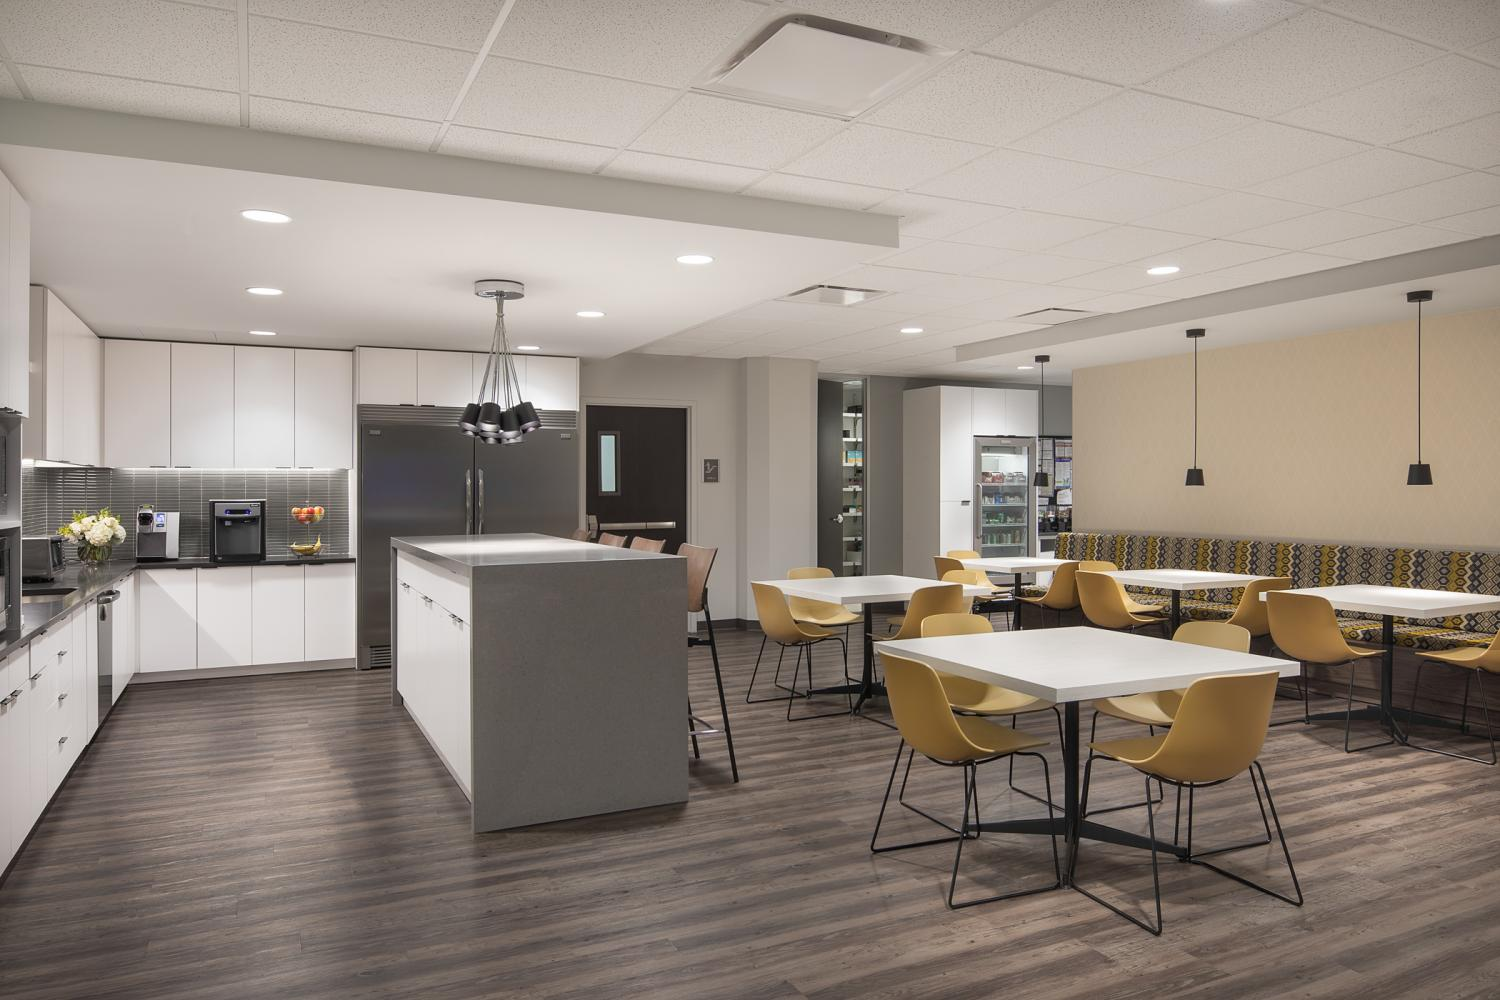 Caerus Oil and Gas Kitchen and Break Room Commercial Construction Denver Colorado